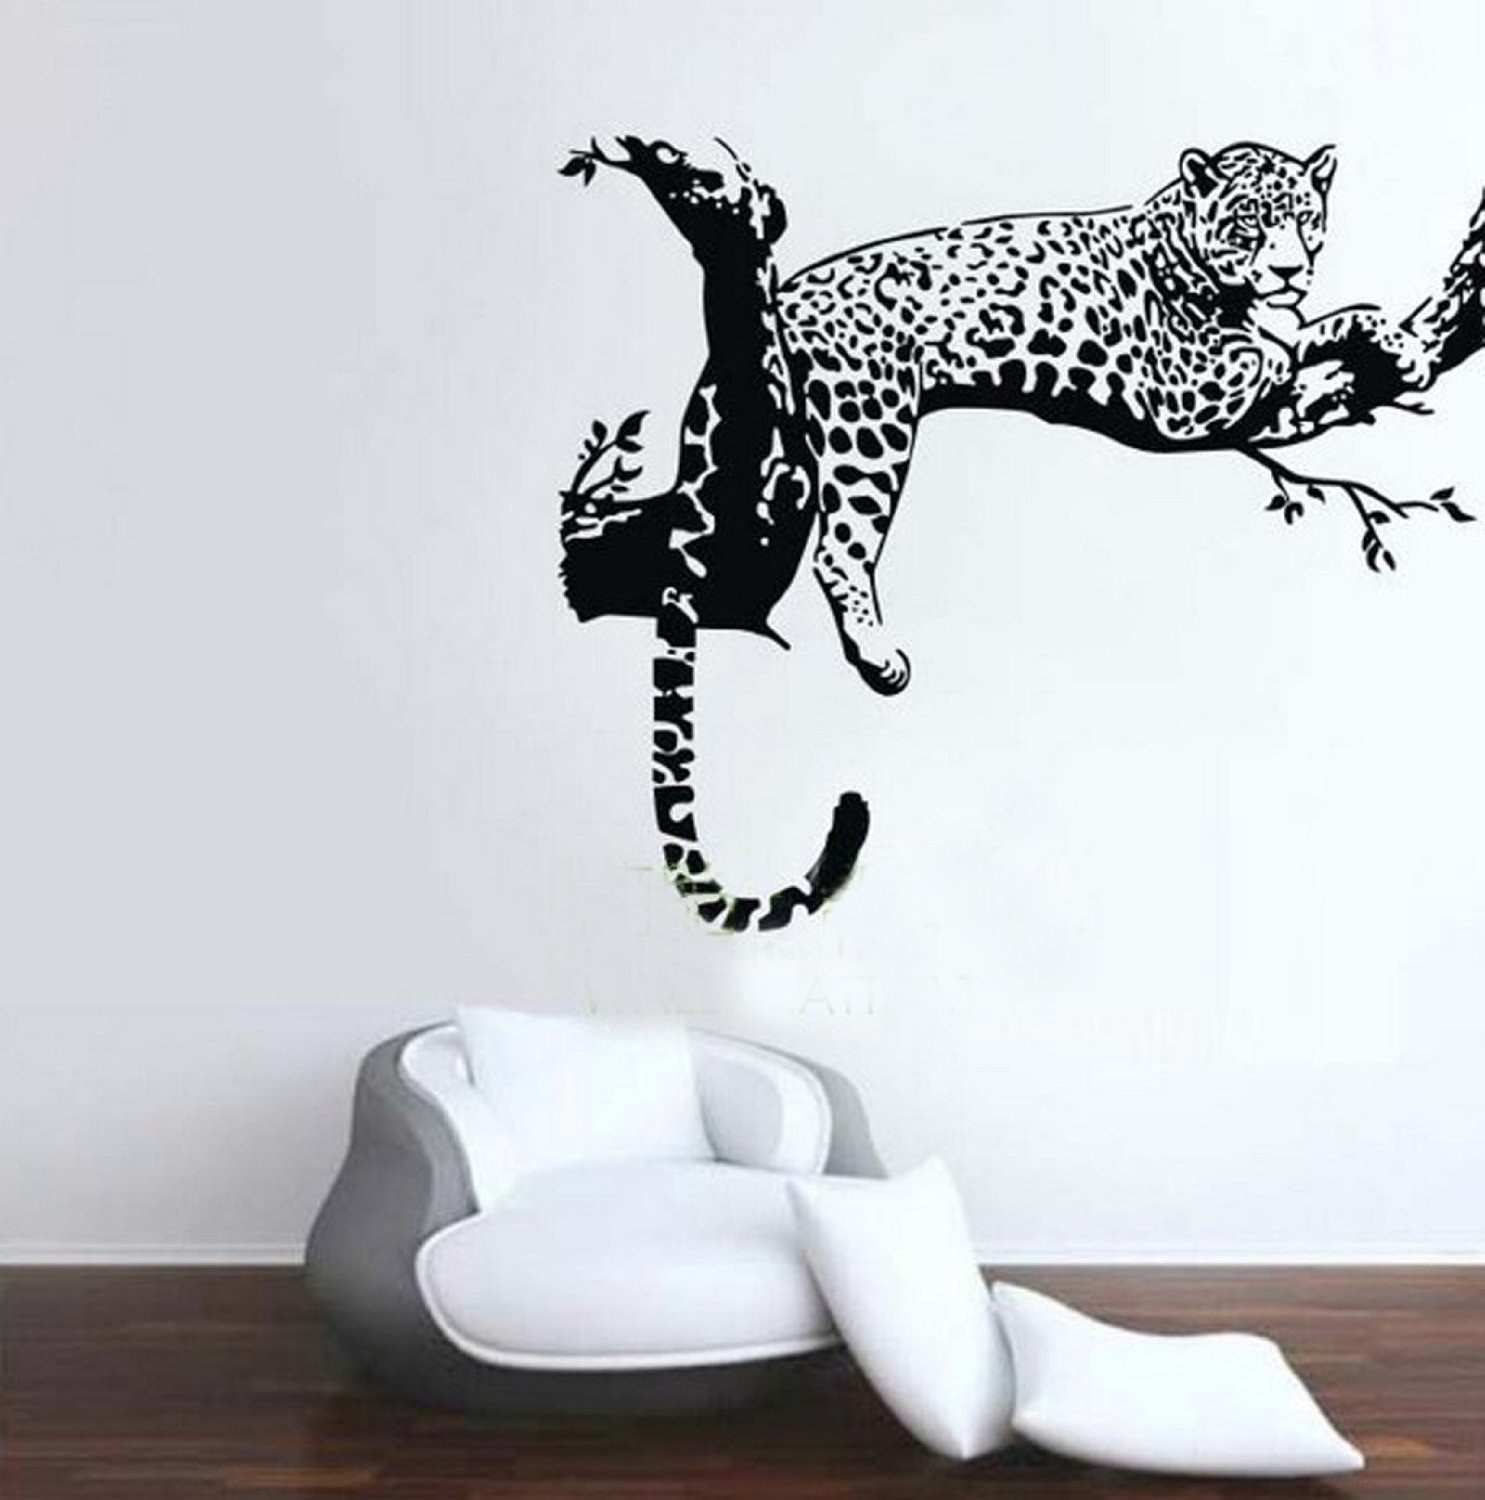 Animal Wild Zoo Leopards Cheetahs Tail Wall Decal Sticker Living